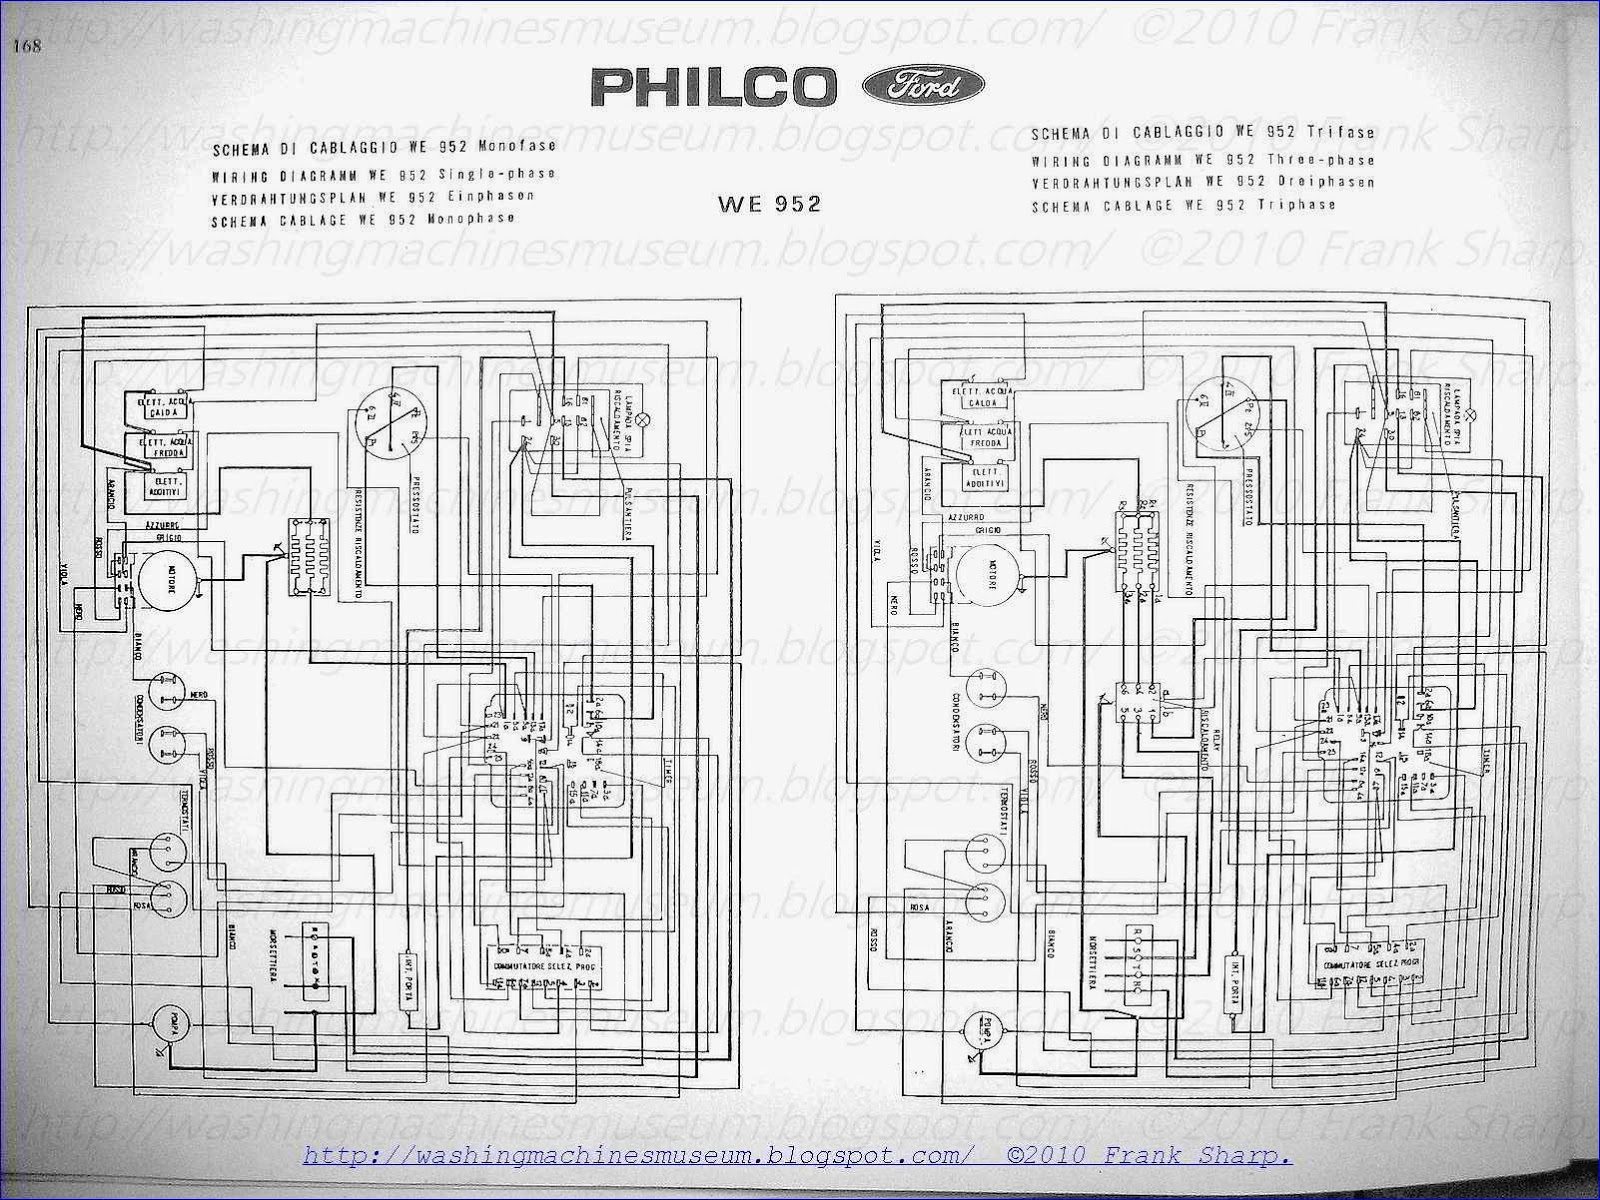 washer rama museum philco ford mod we952 schematic diagram. Black Bedroom Furniture Sets. Home Design Ideas